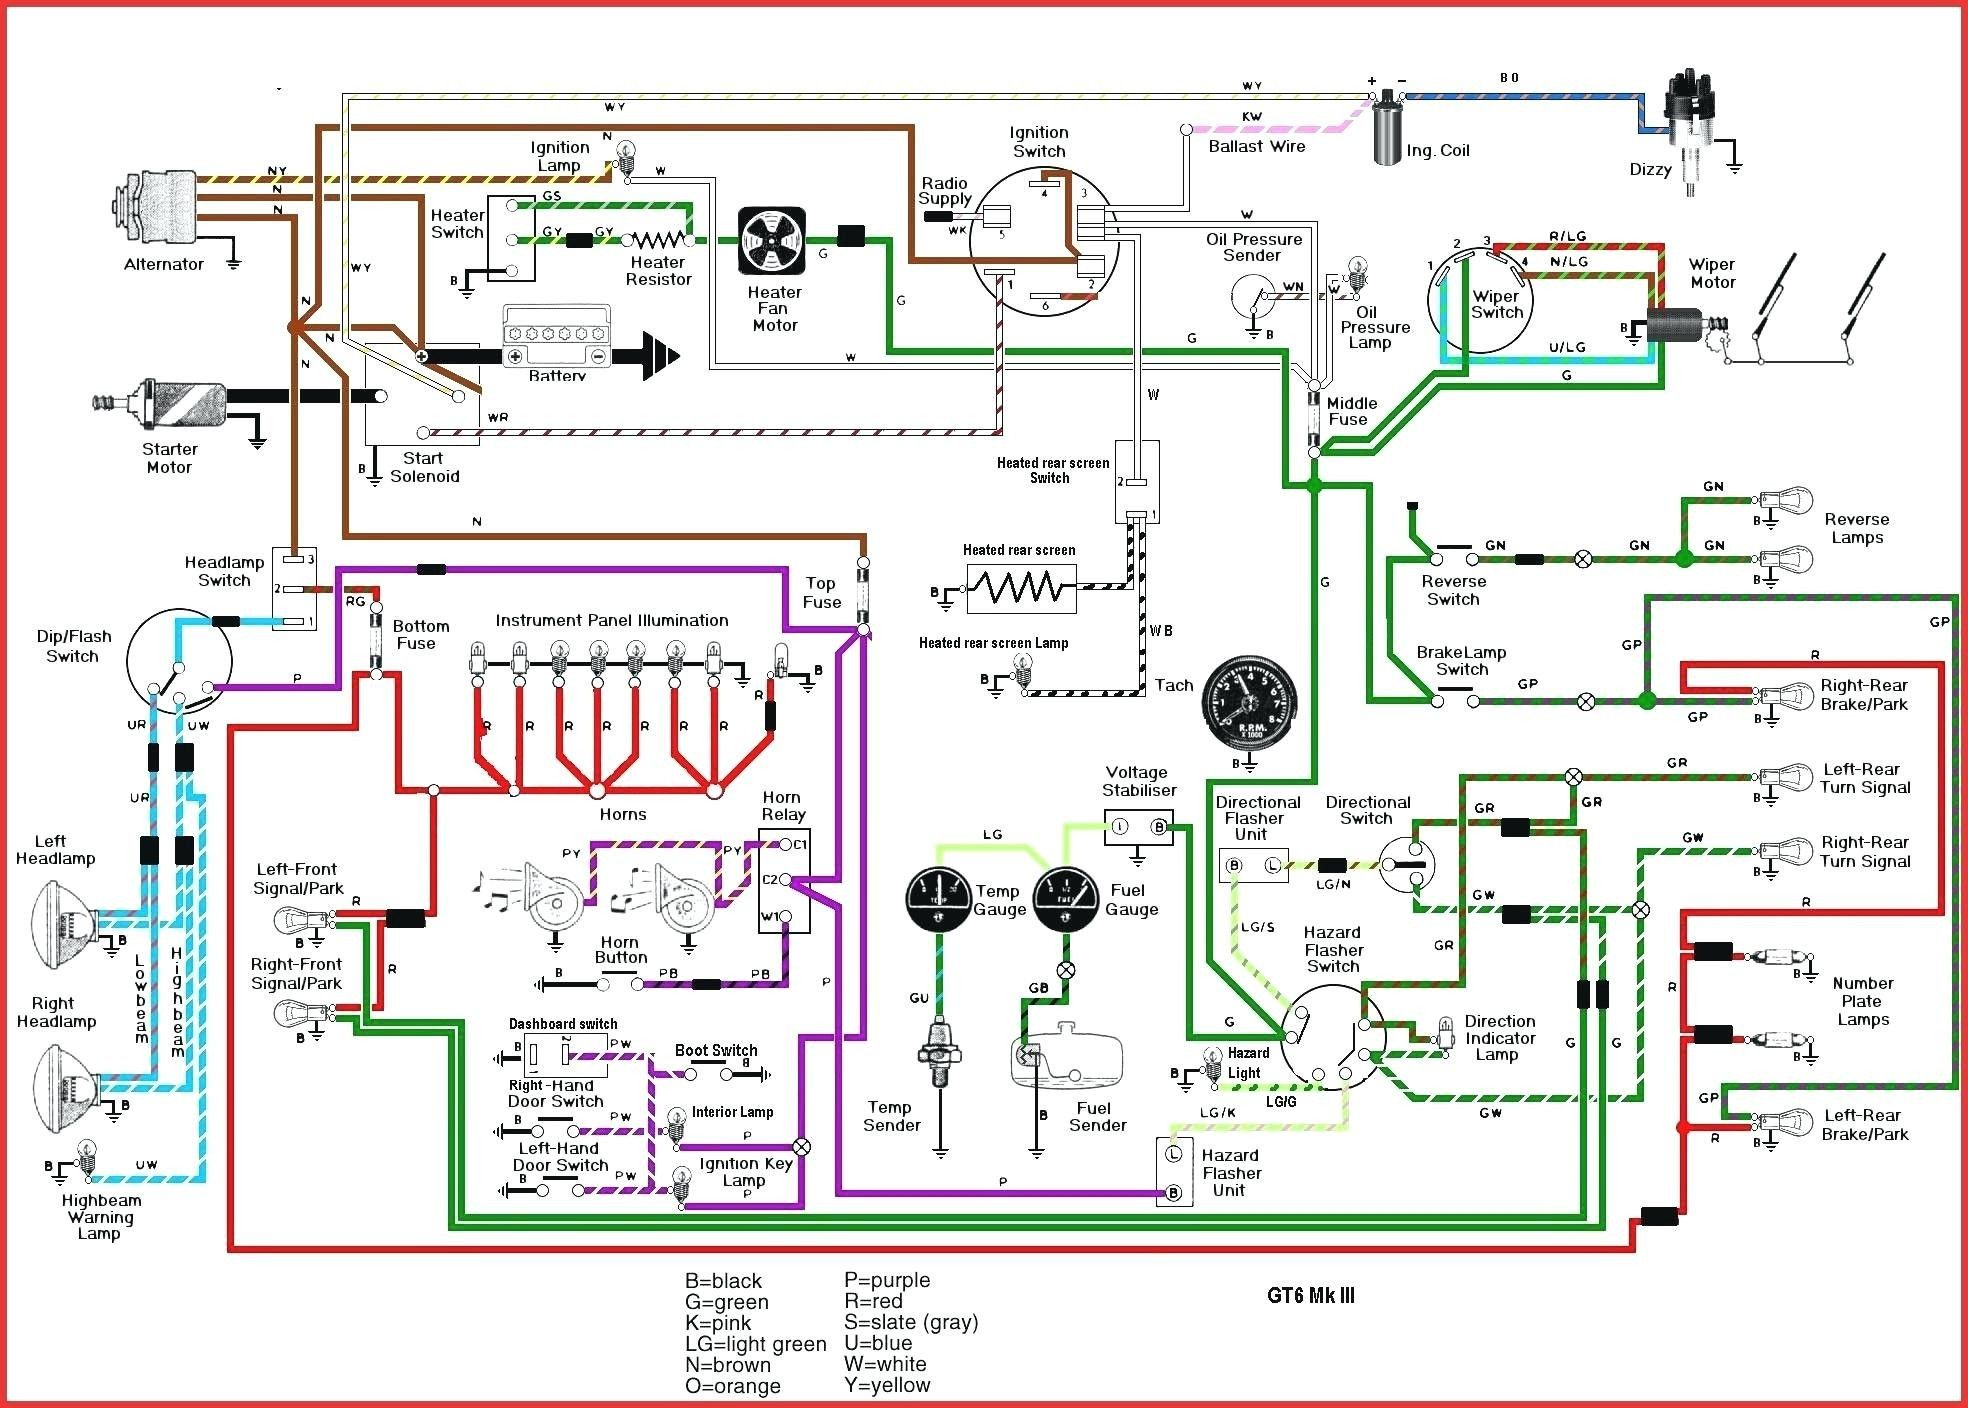 Unique Residential Electrical Wiring for Dummies #diagram #wiringdiagram  #diagramming #Diagramm… | Electrical circuit diagram, Electrical diagram, Electrical  wiringPinterest